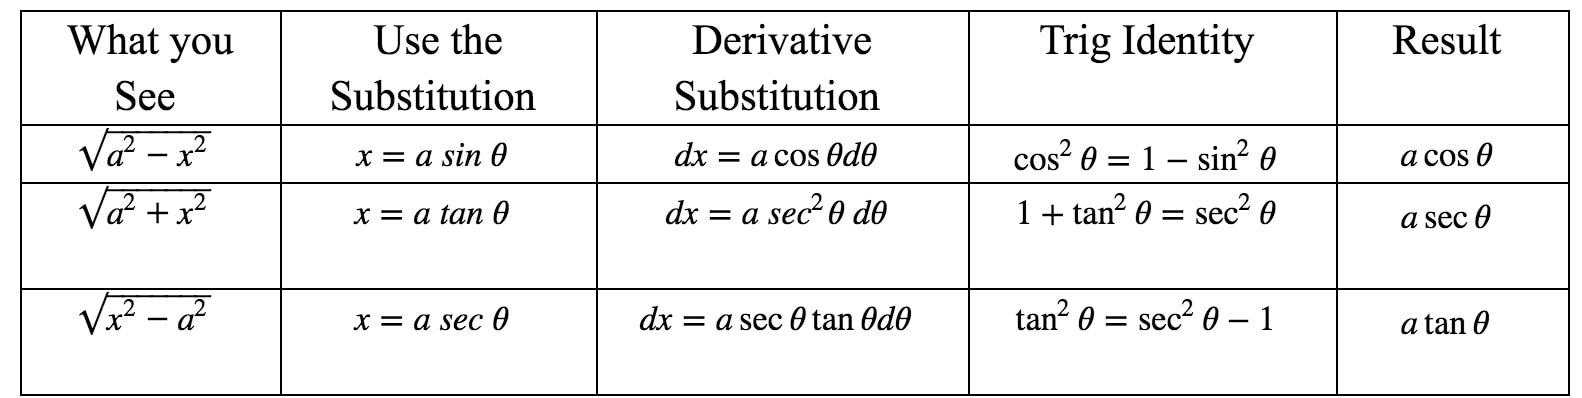 Table 1: Trigonometric Substitution Table